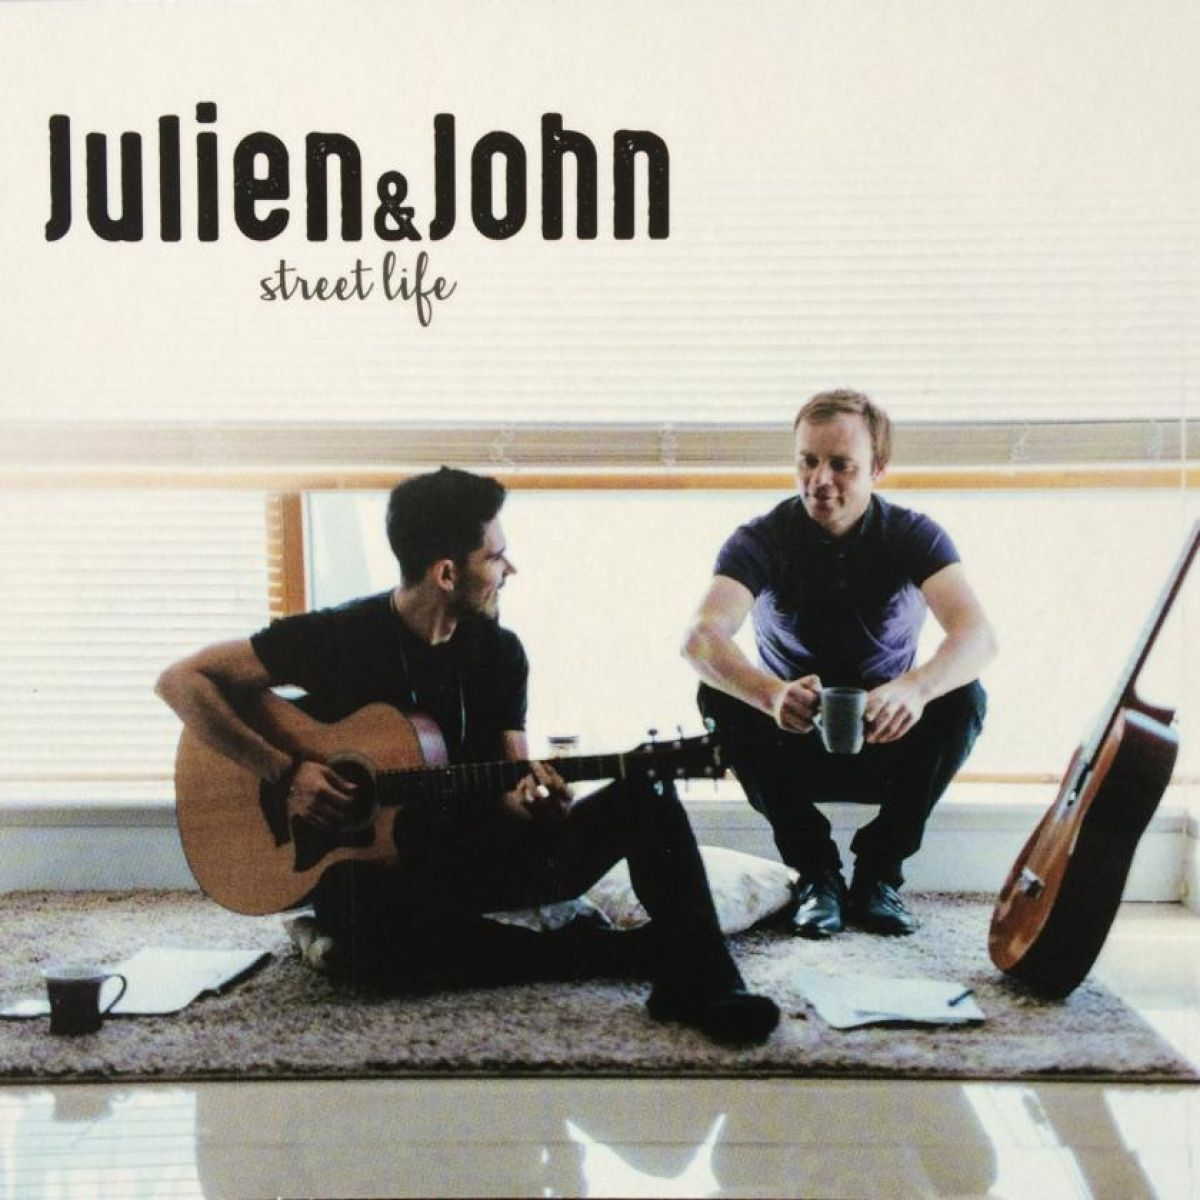 Julien John Street Life Review Both Easy To Listen To And